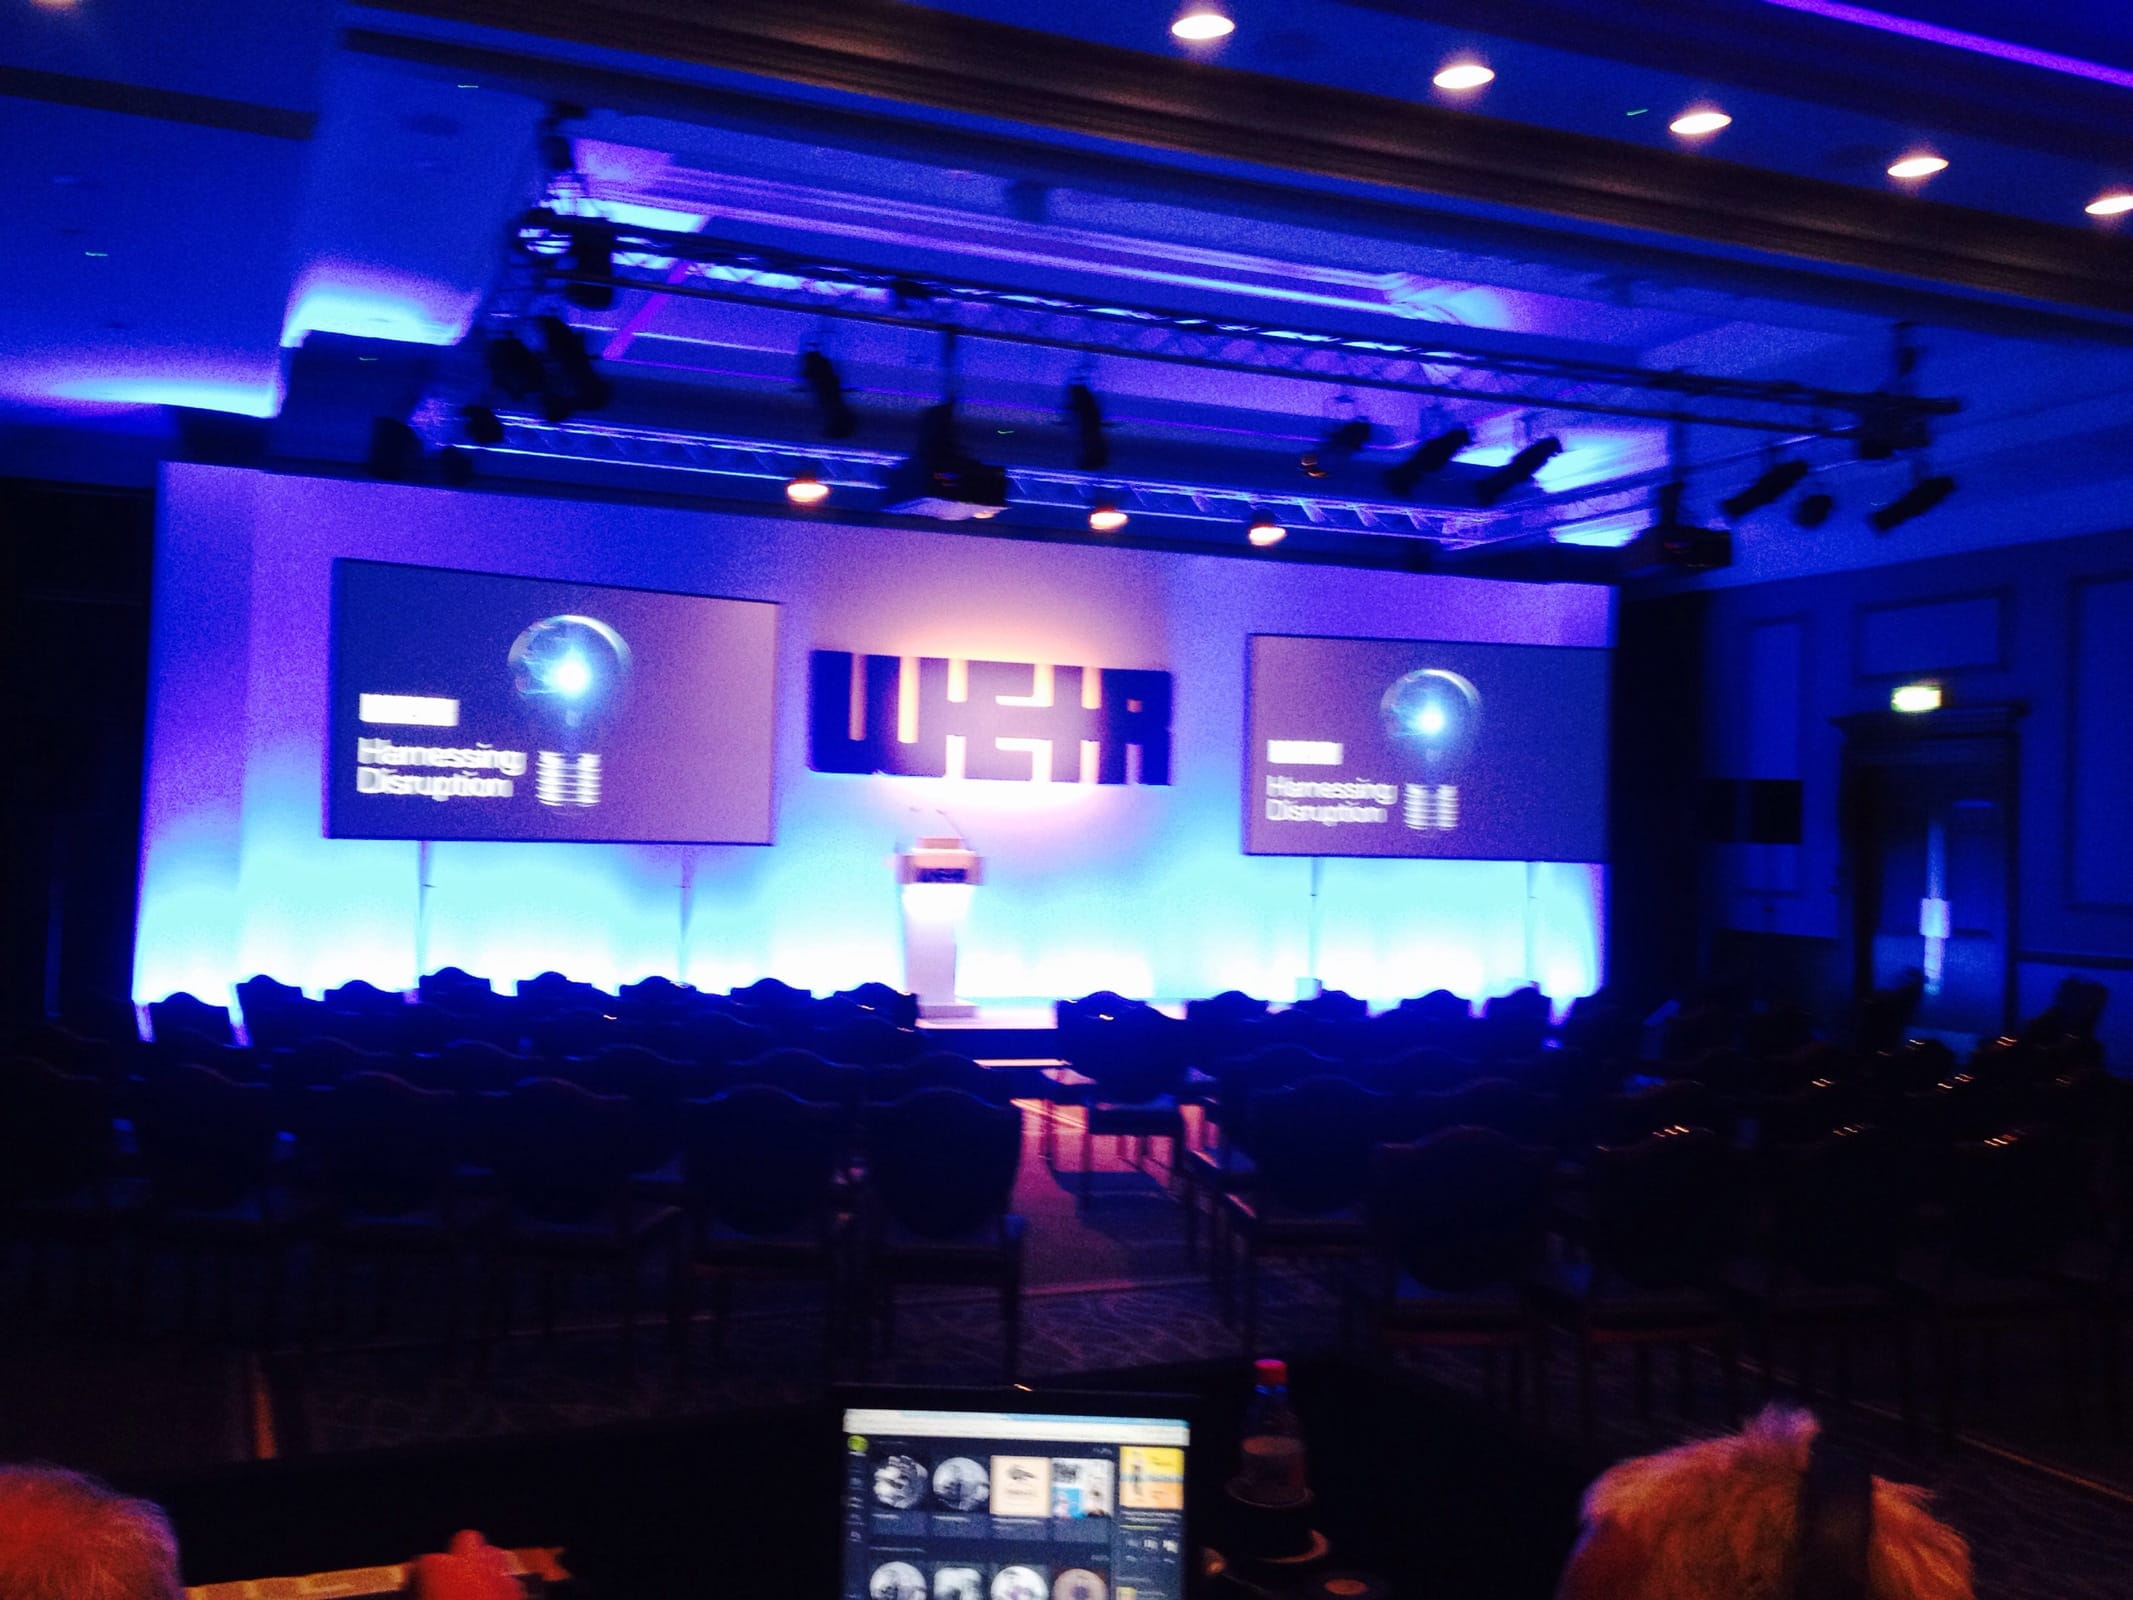 Weir conference at Gleneagles